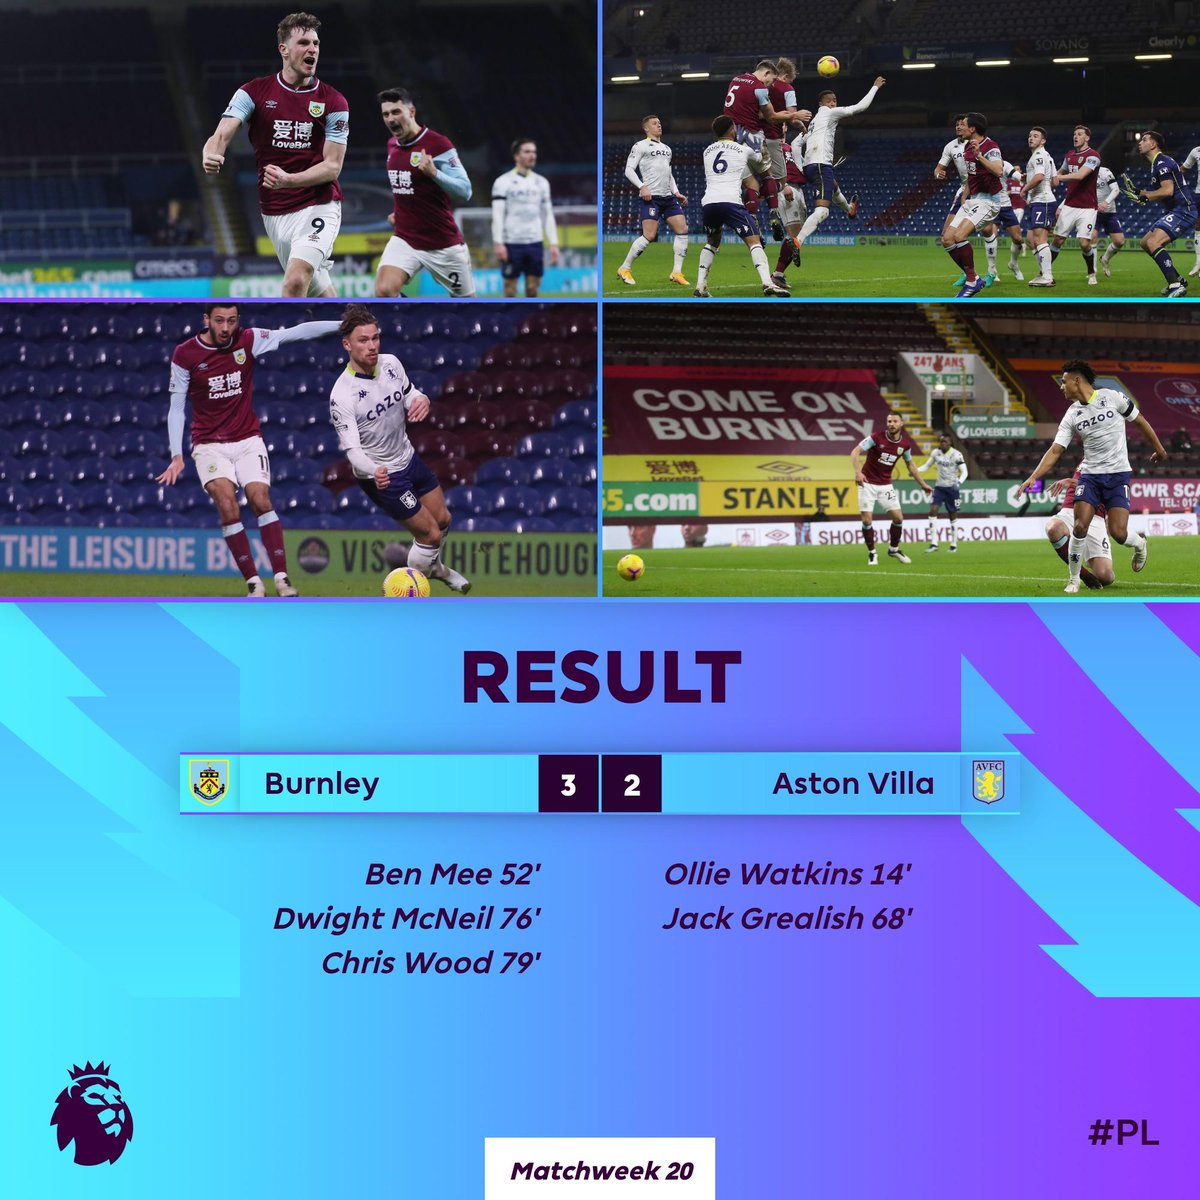 Replying to @premierleague: Burnley fight back to secure back-to-back #PL wins for the first time this season  #BURAVL